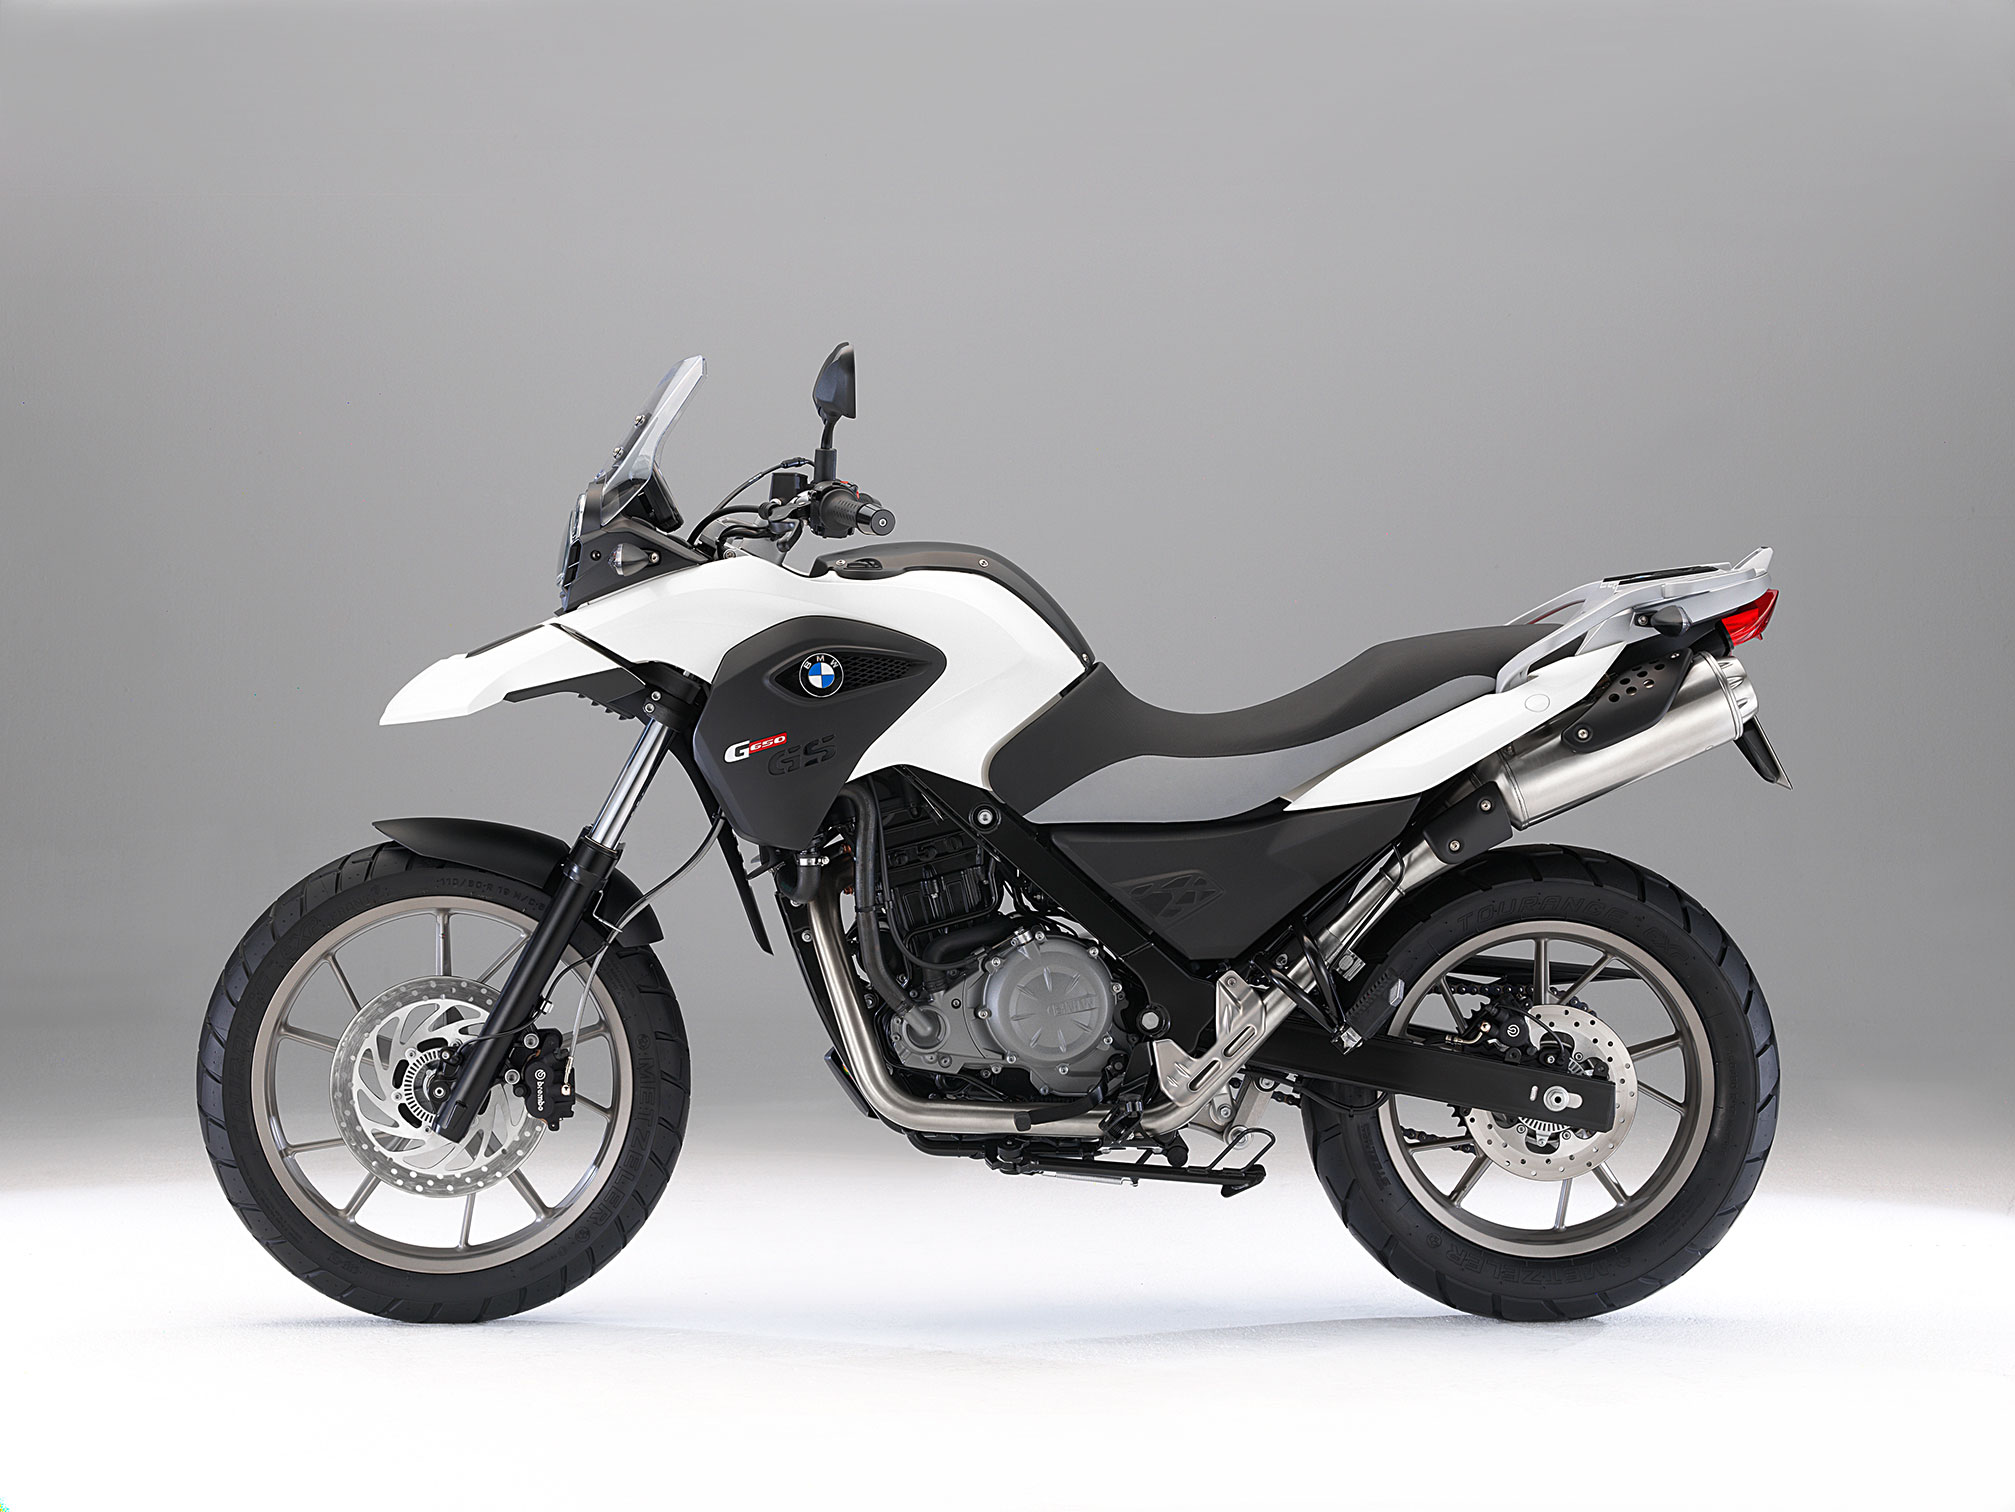 BMW G 650 GS 2010 images #8850